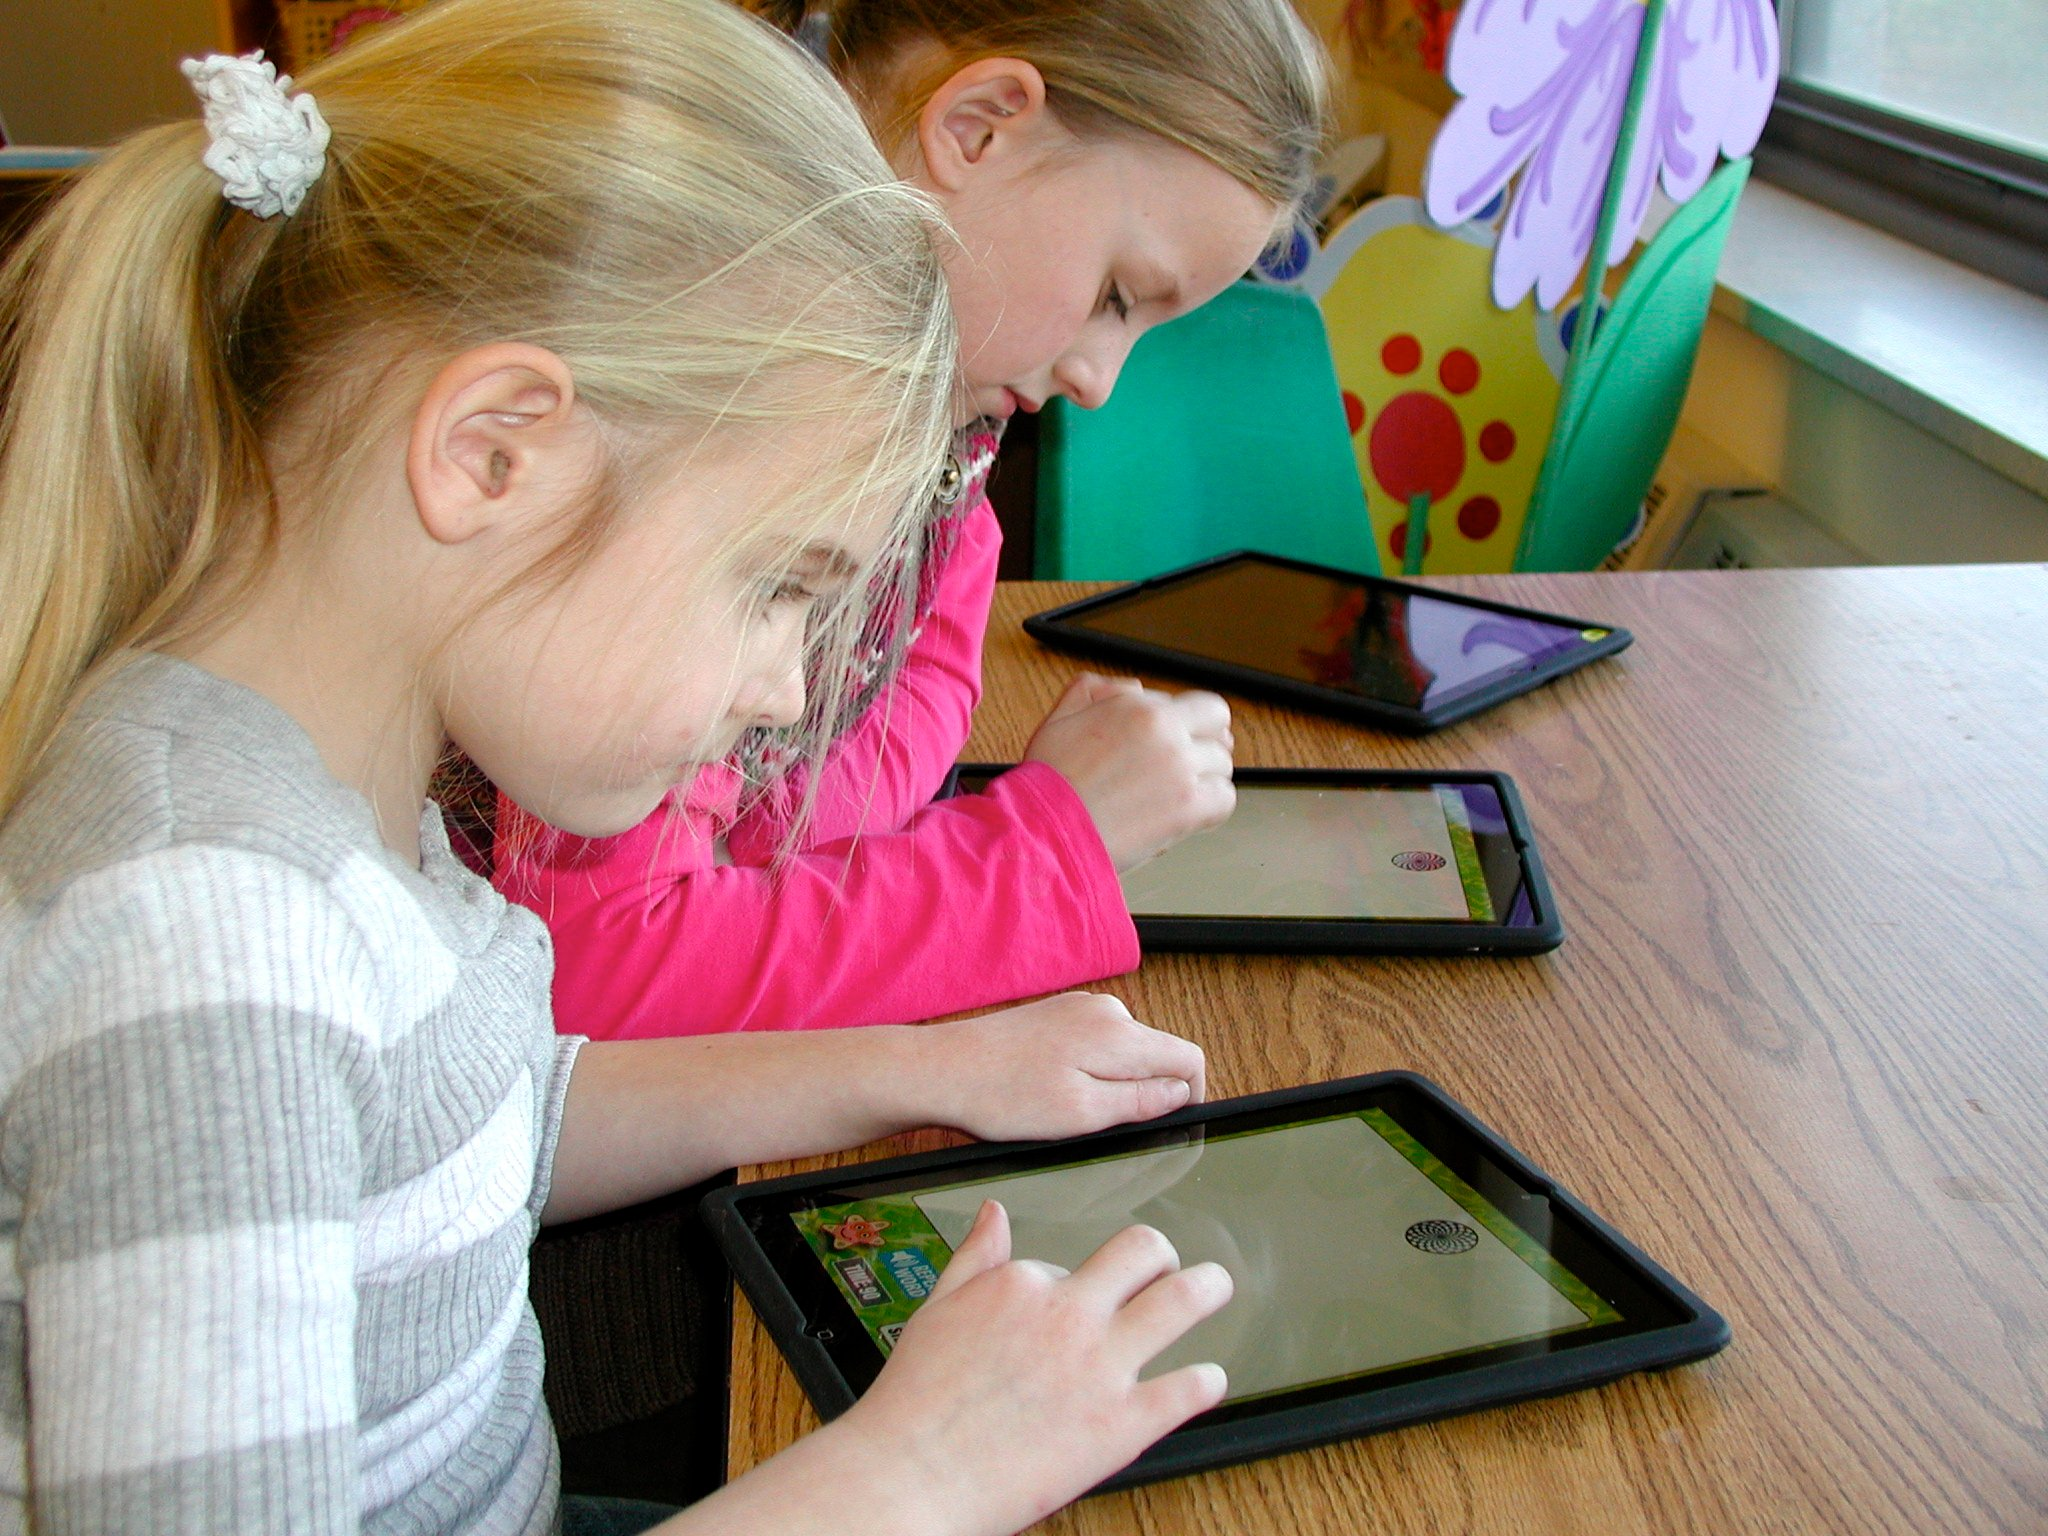 iPads in education, school wireless networks, wifi companies,